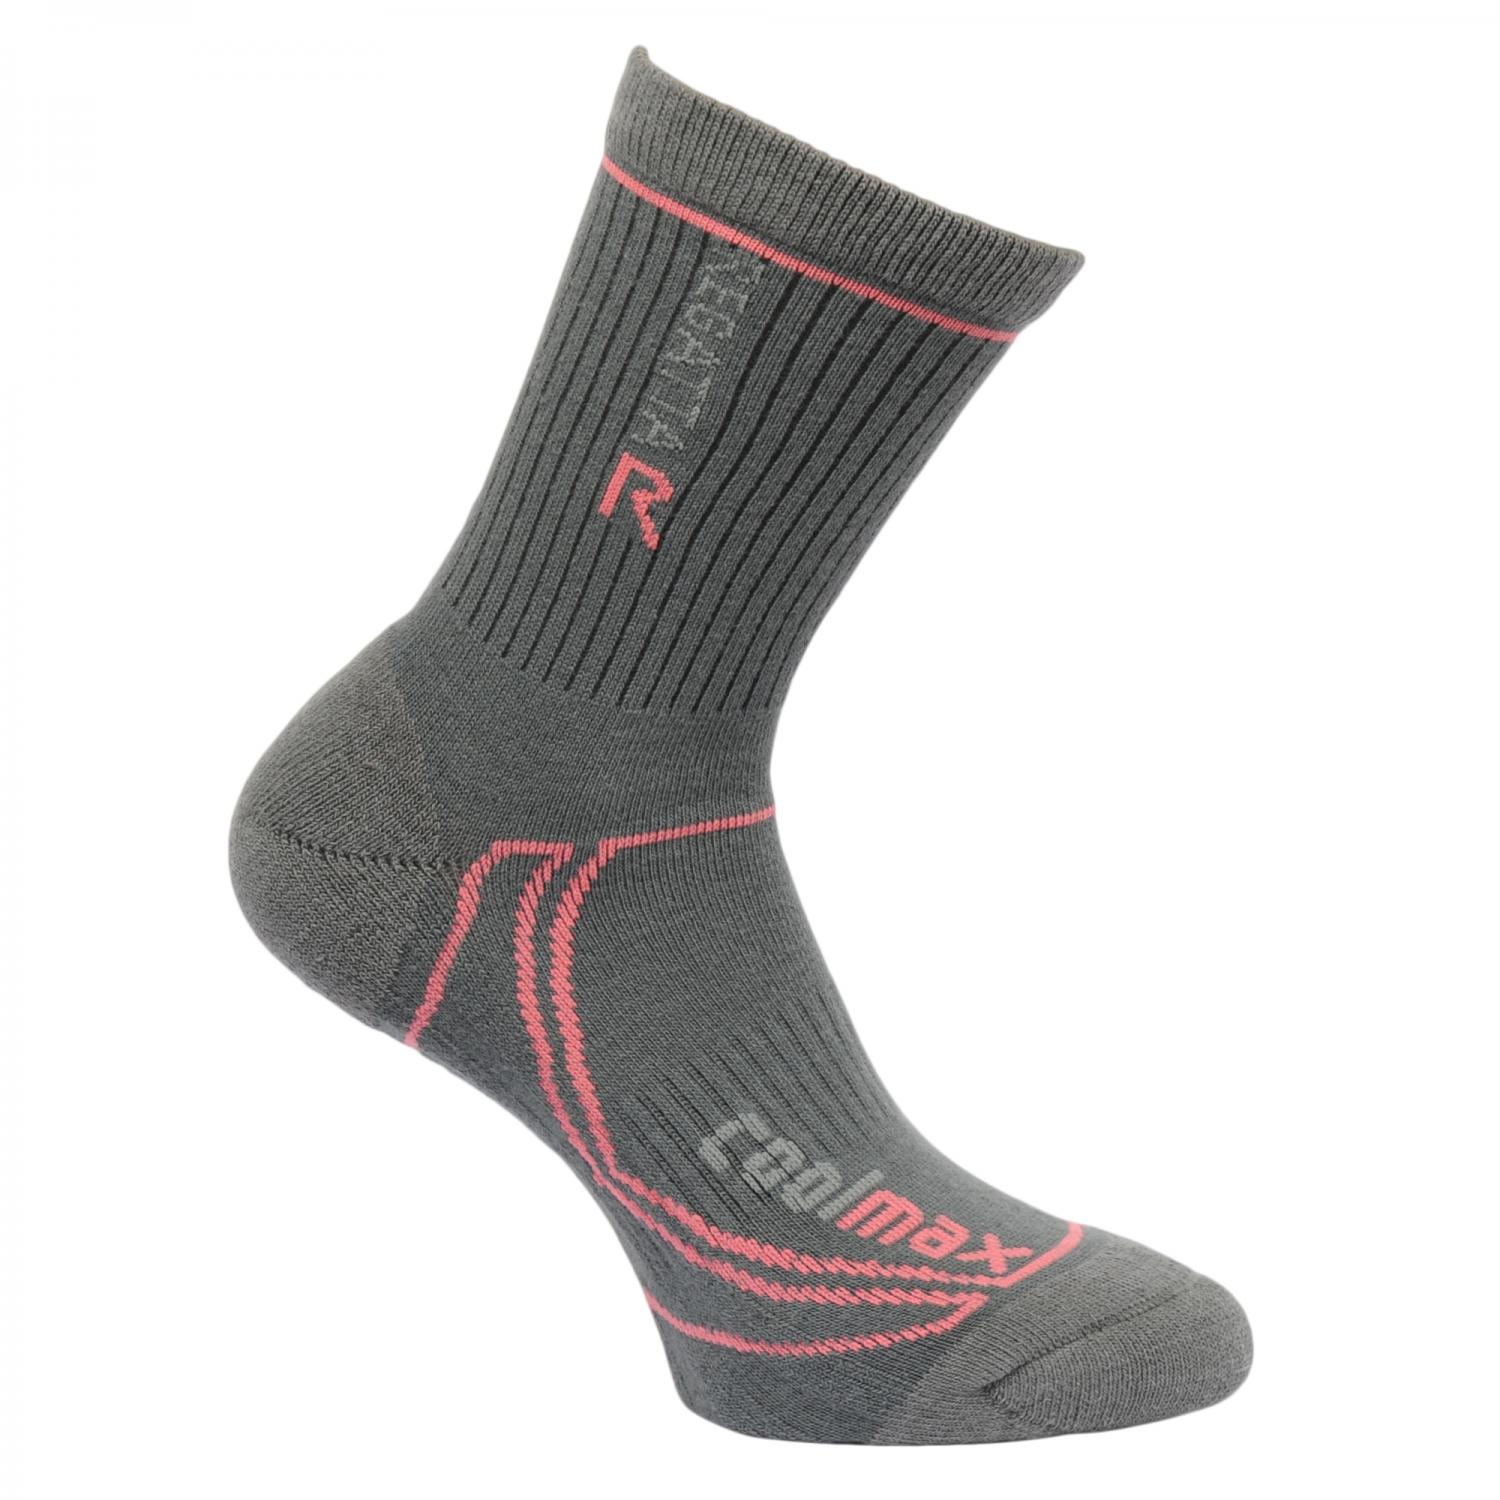 Womens 2 Season Coolmax Trek & Trail Socks Iron